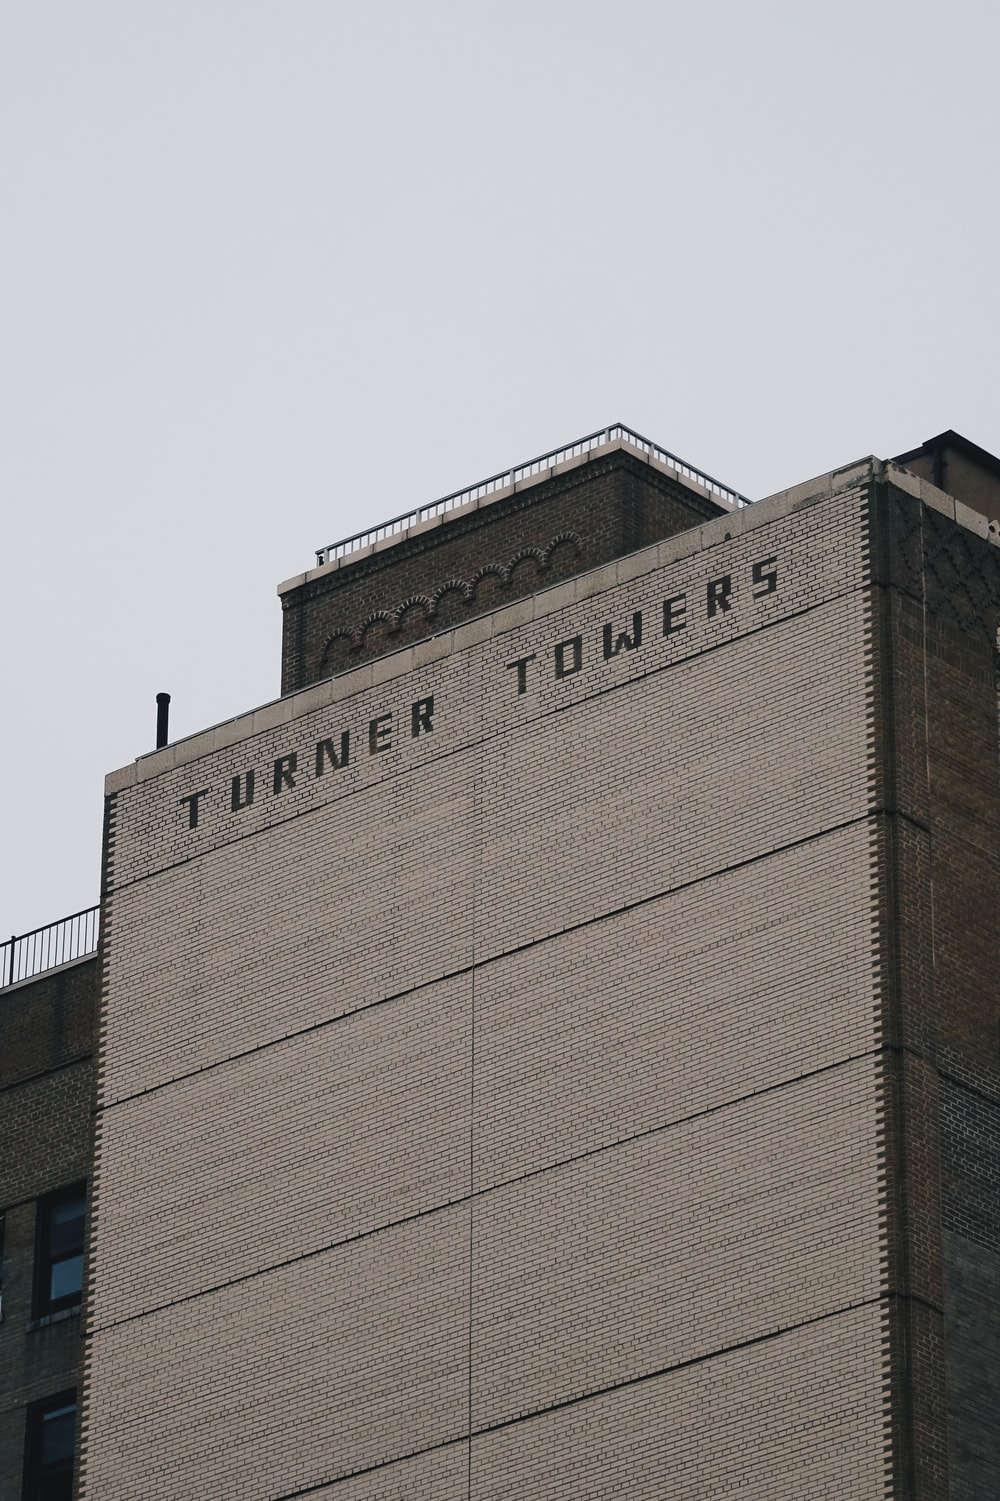 Turner Tower low-angle photography